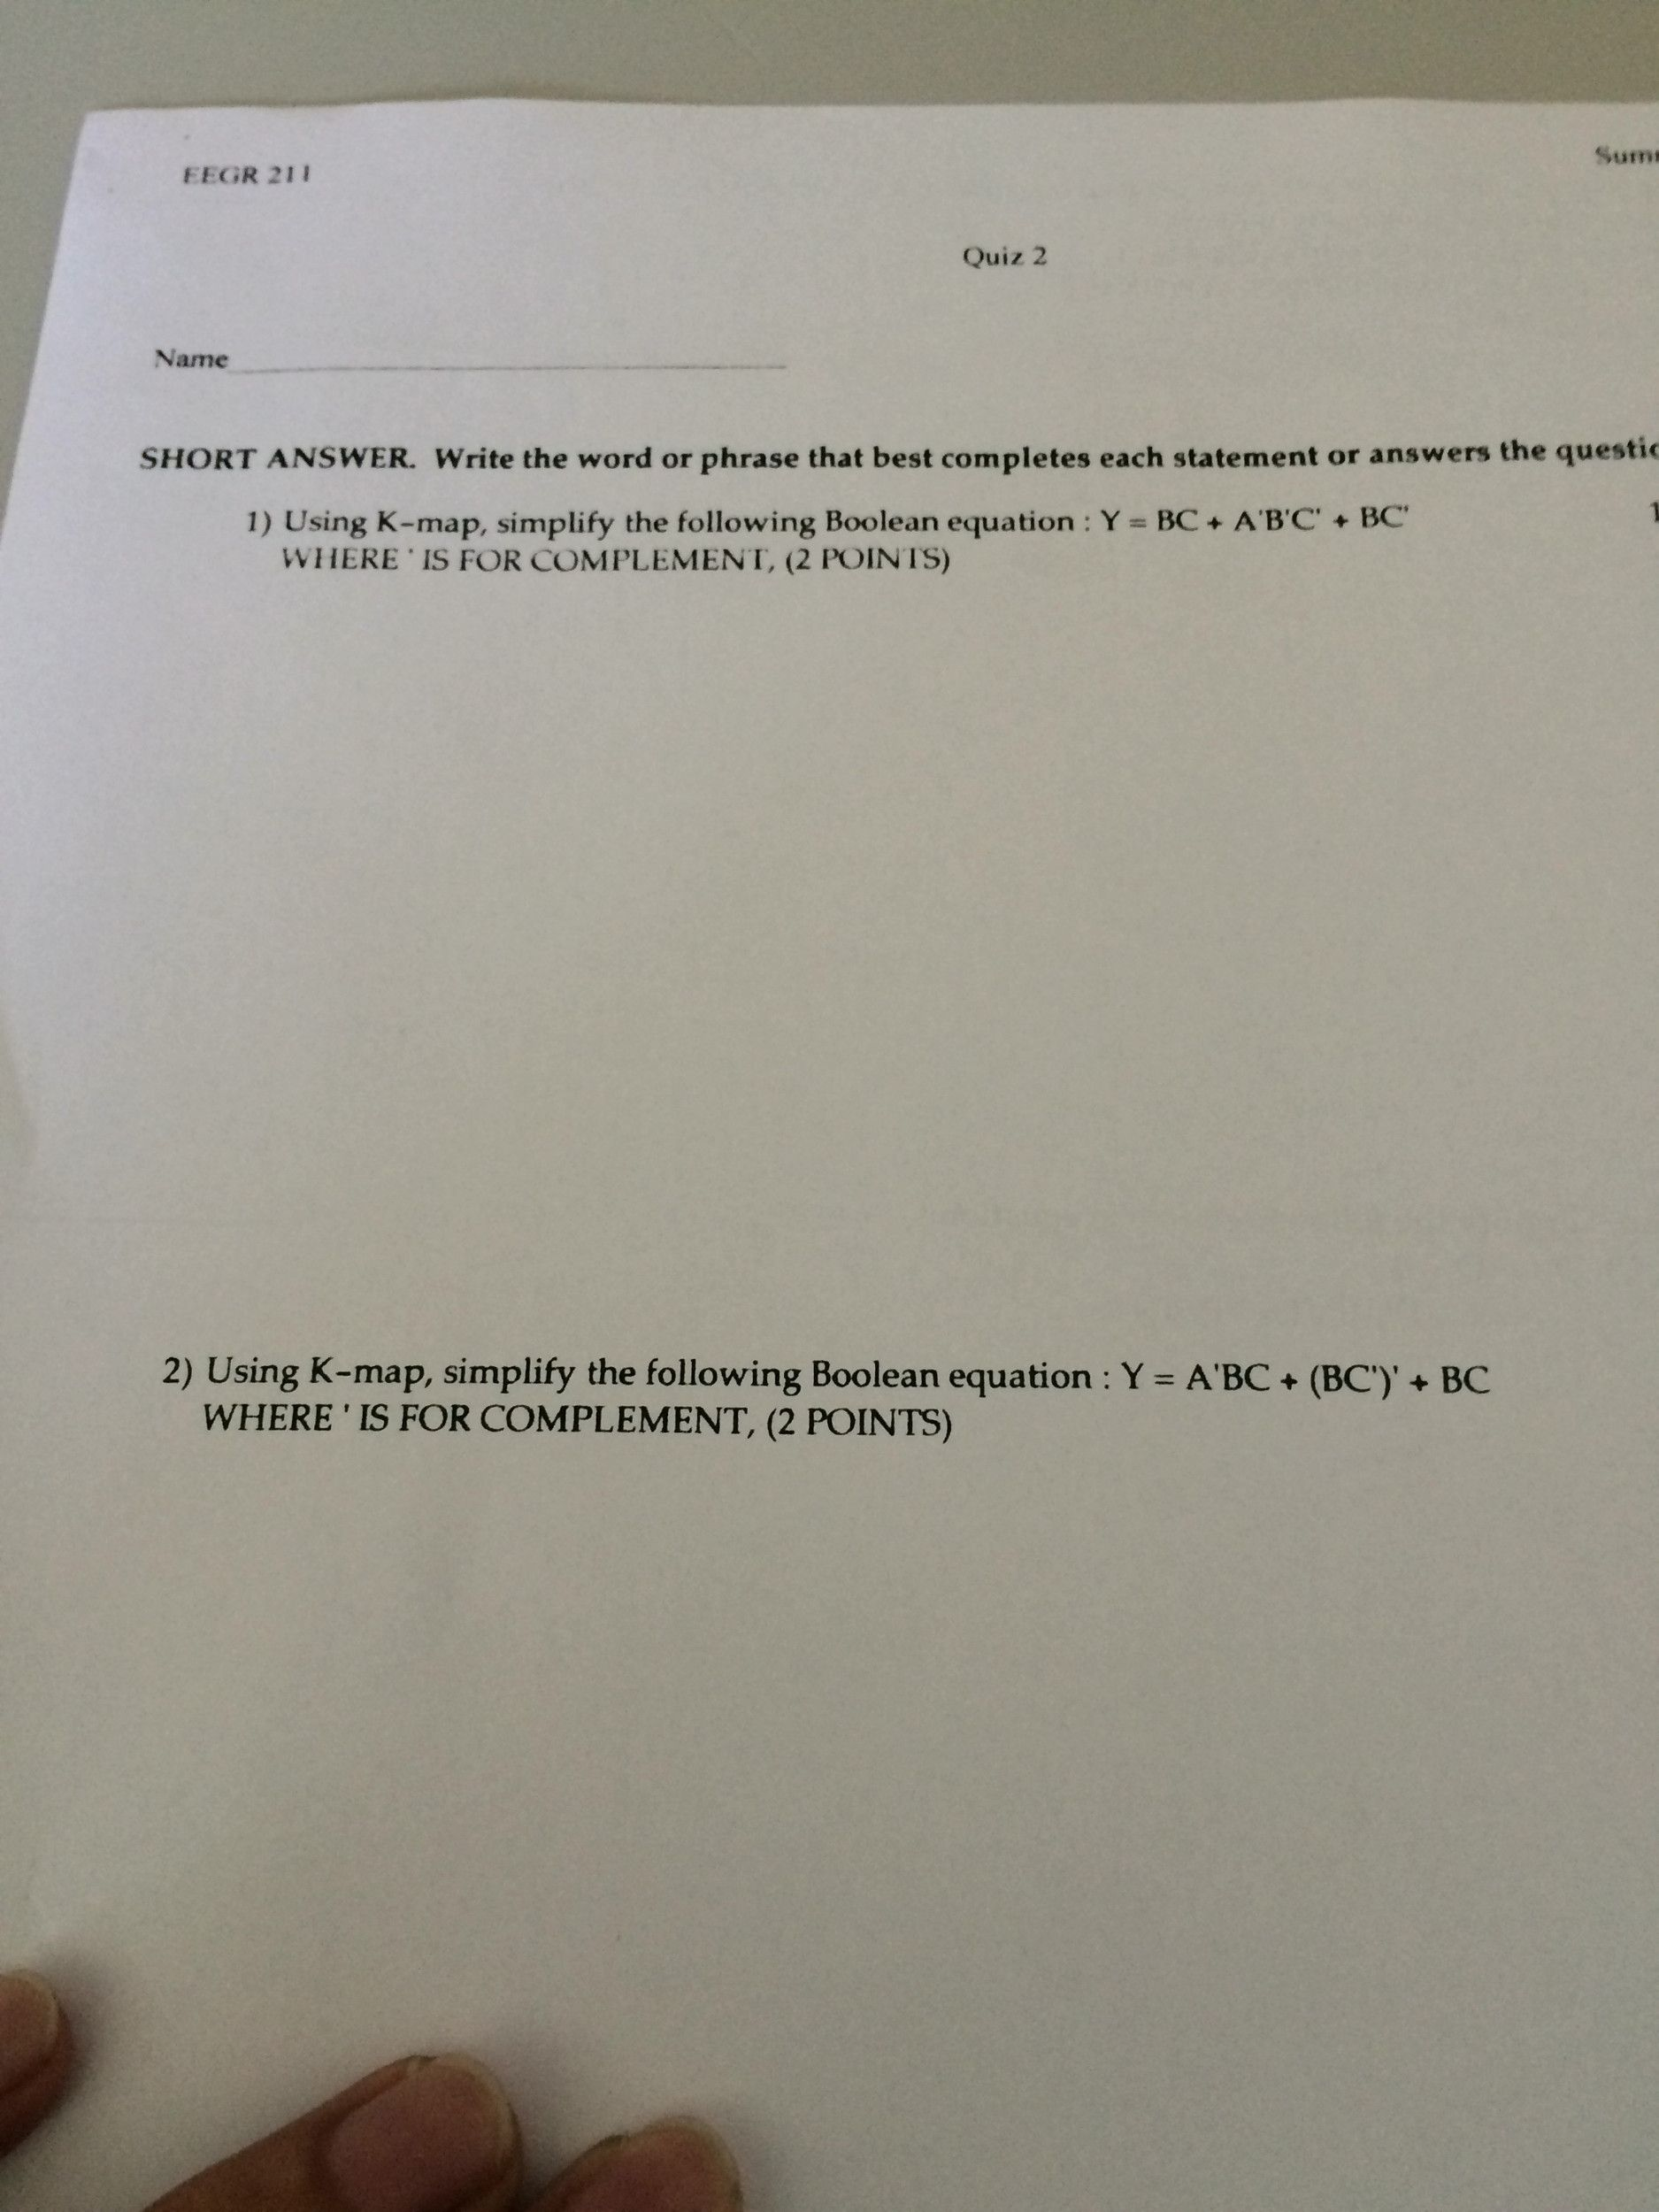 Worksheet Math Models Worksheet 41 Relations And Functions